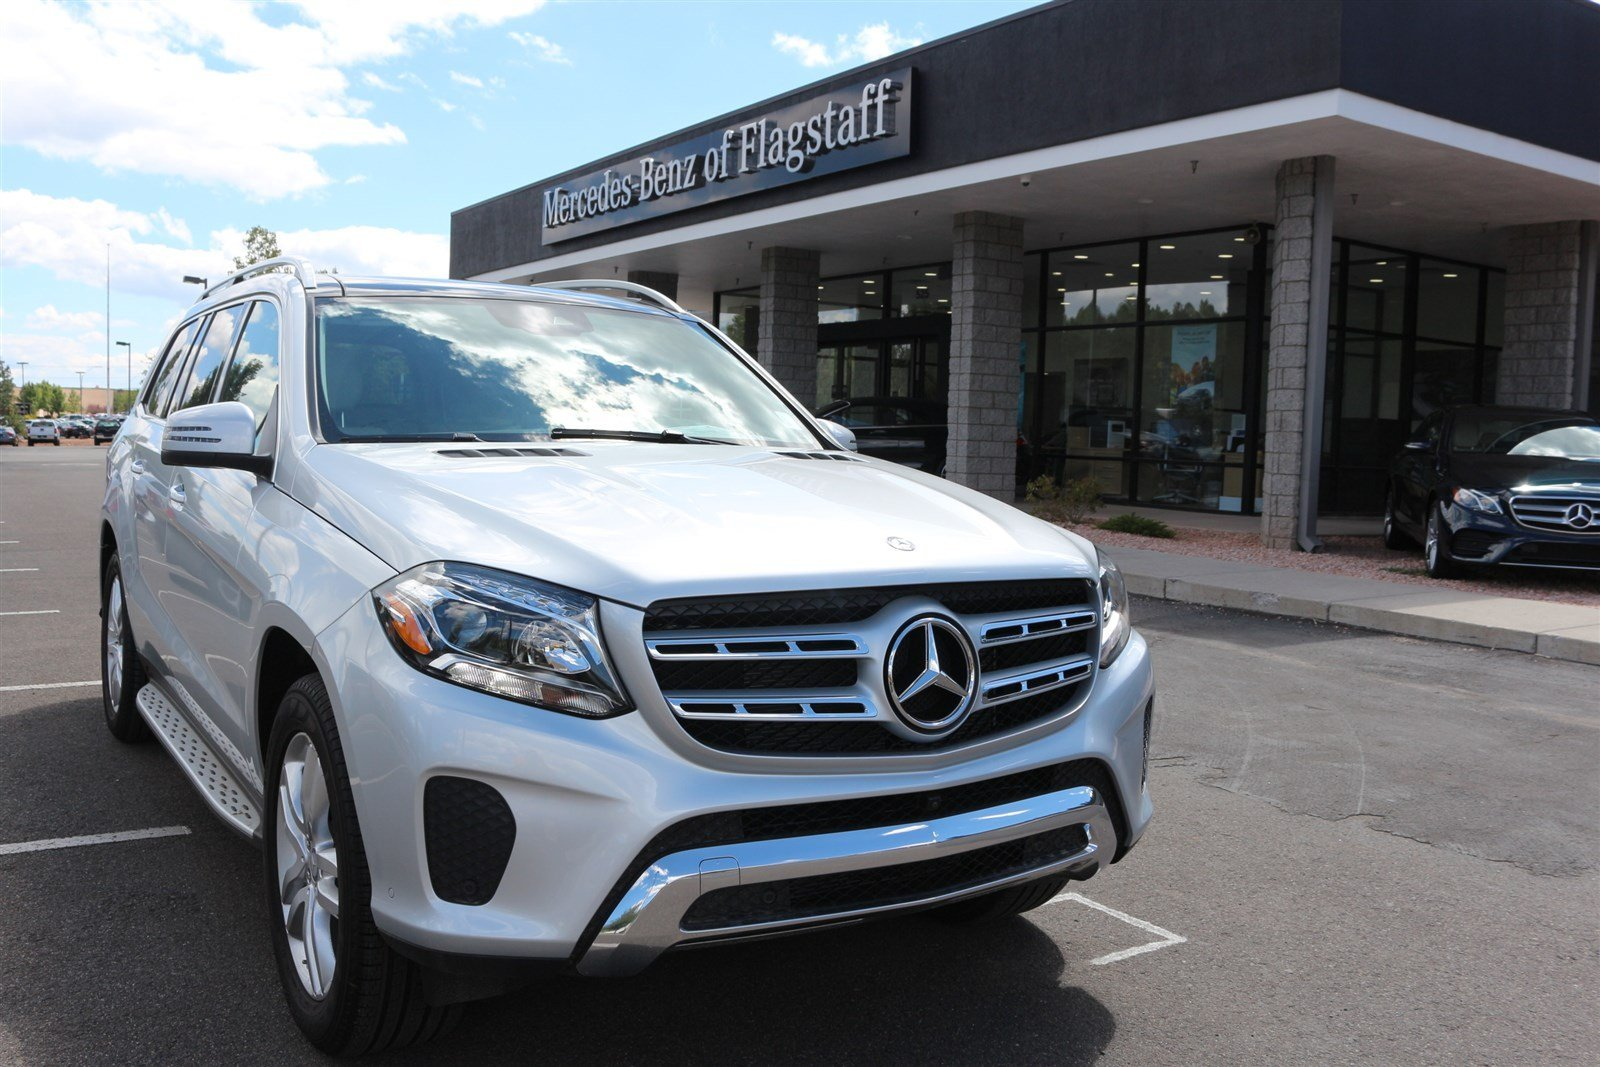 New 2017 mercedes benz gls gls 450 suv in flagstaff for Mercedes benz of flagstaff